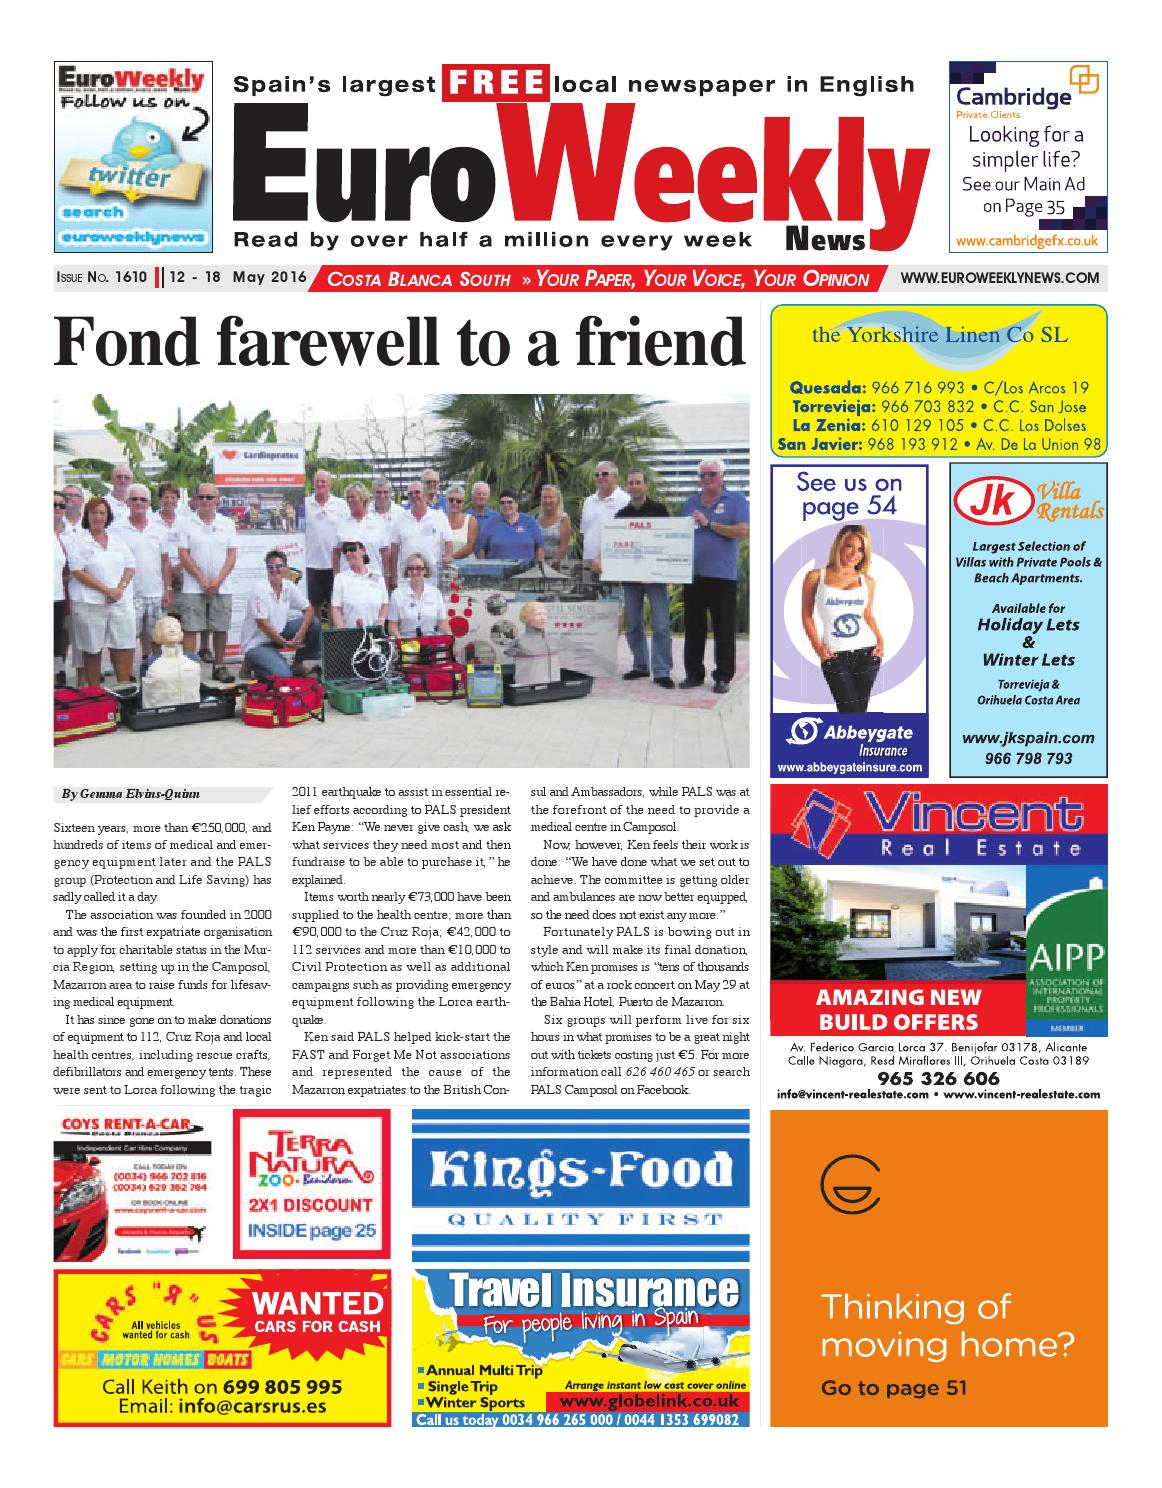 Euro Weekly News Costa Blanca South 12 18 May 2016 Issue 1610  # Penguin Lodge Muebles